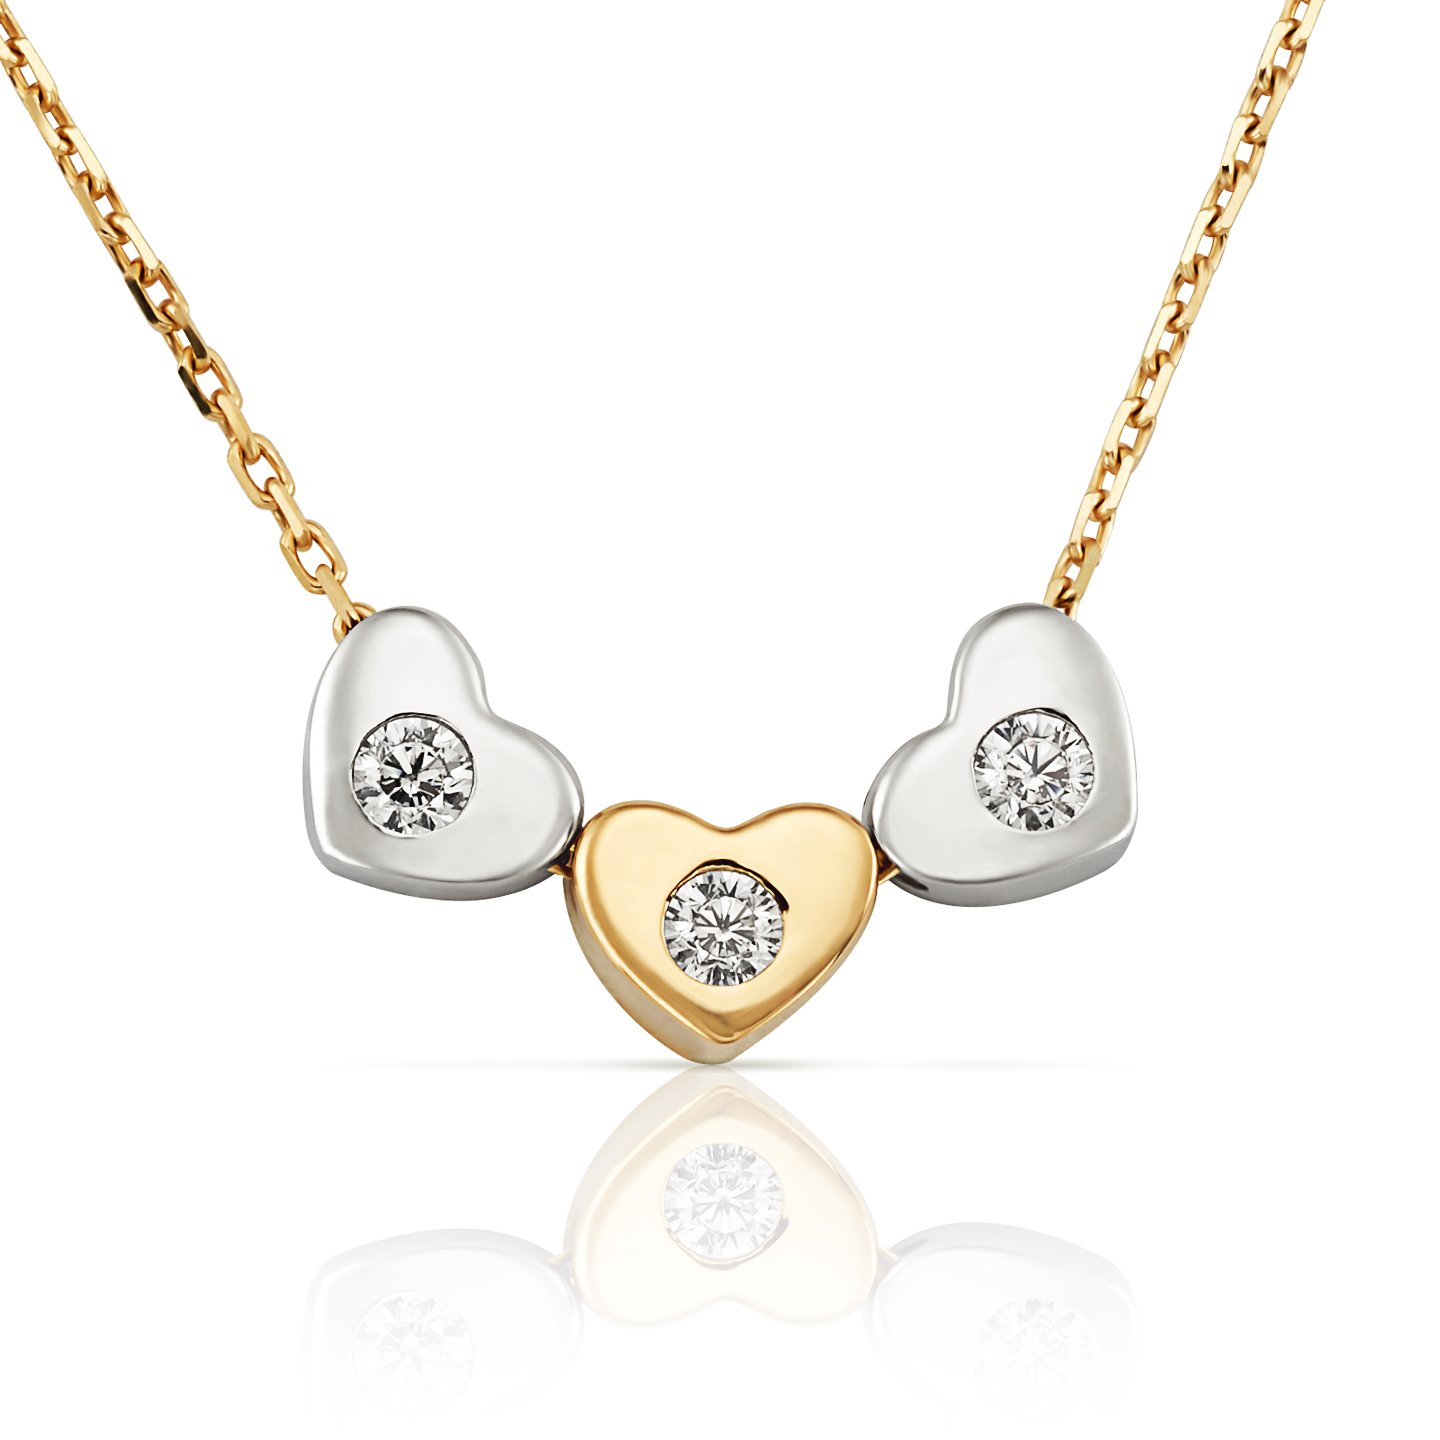 14k Two Tone Yellow and White Gold Petite Sliding Triple Heart Pendant Necklace with CZ on Delicate Chain